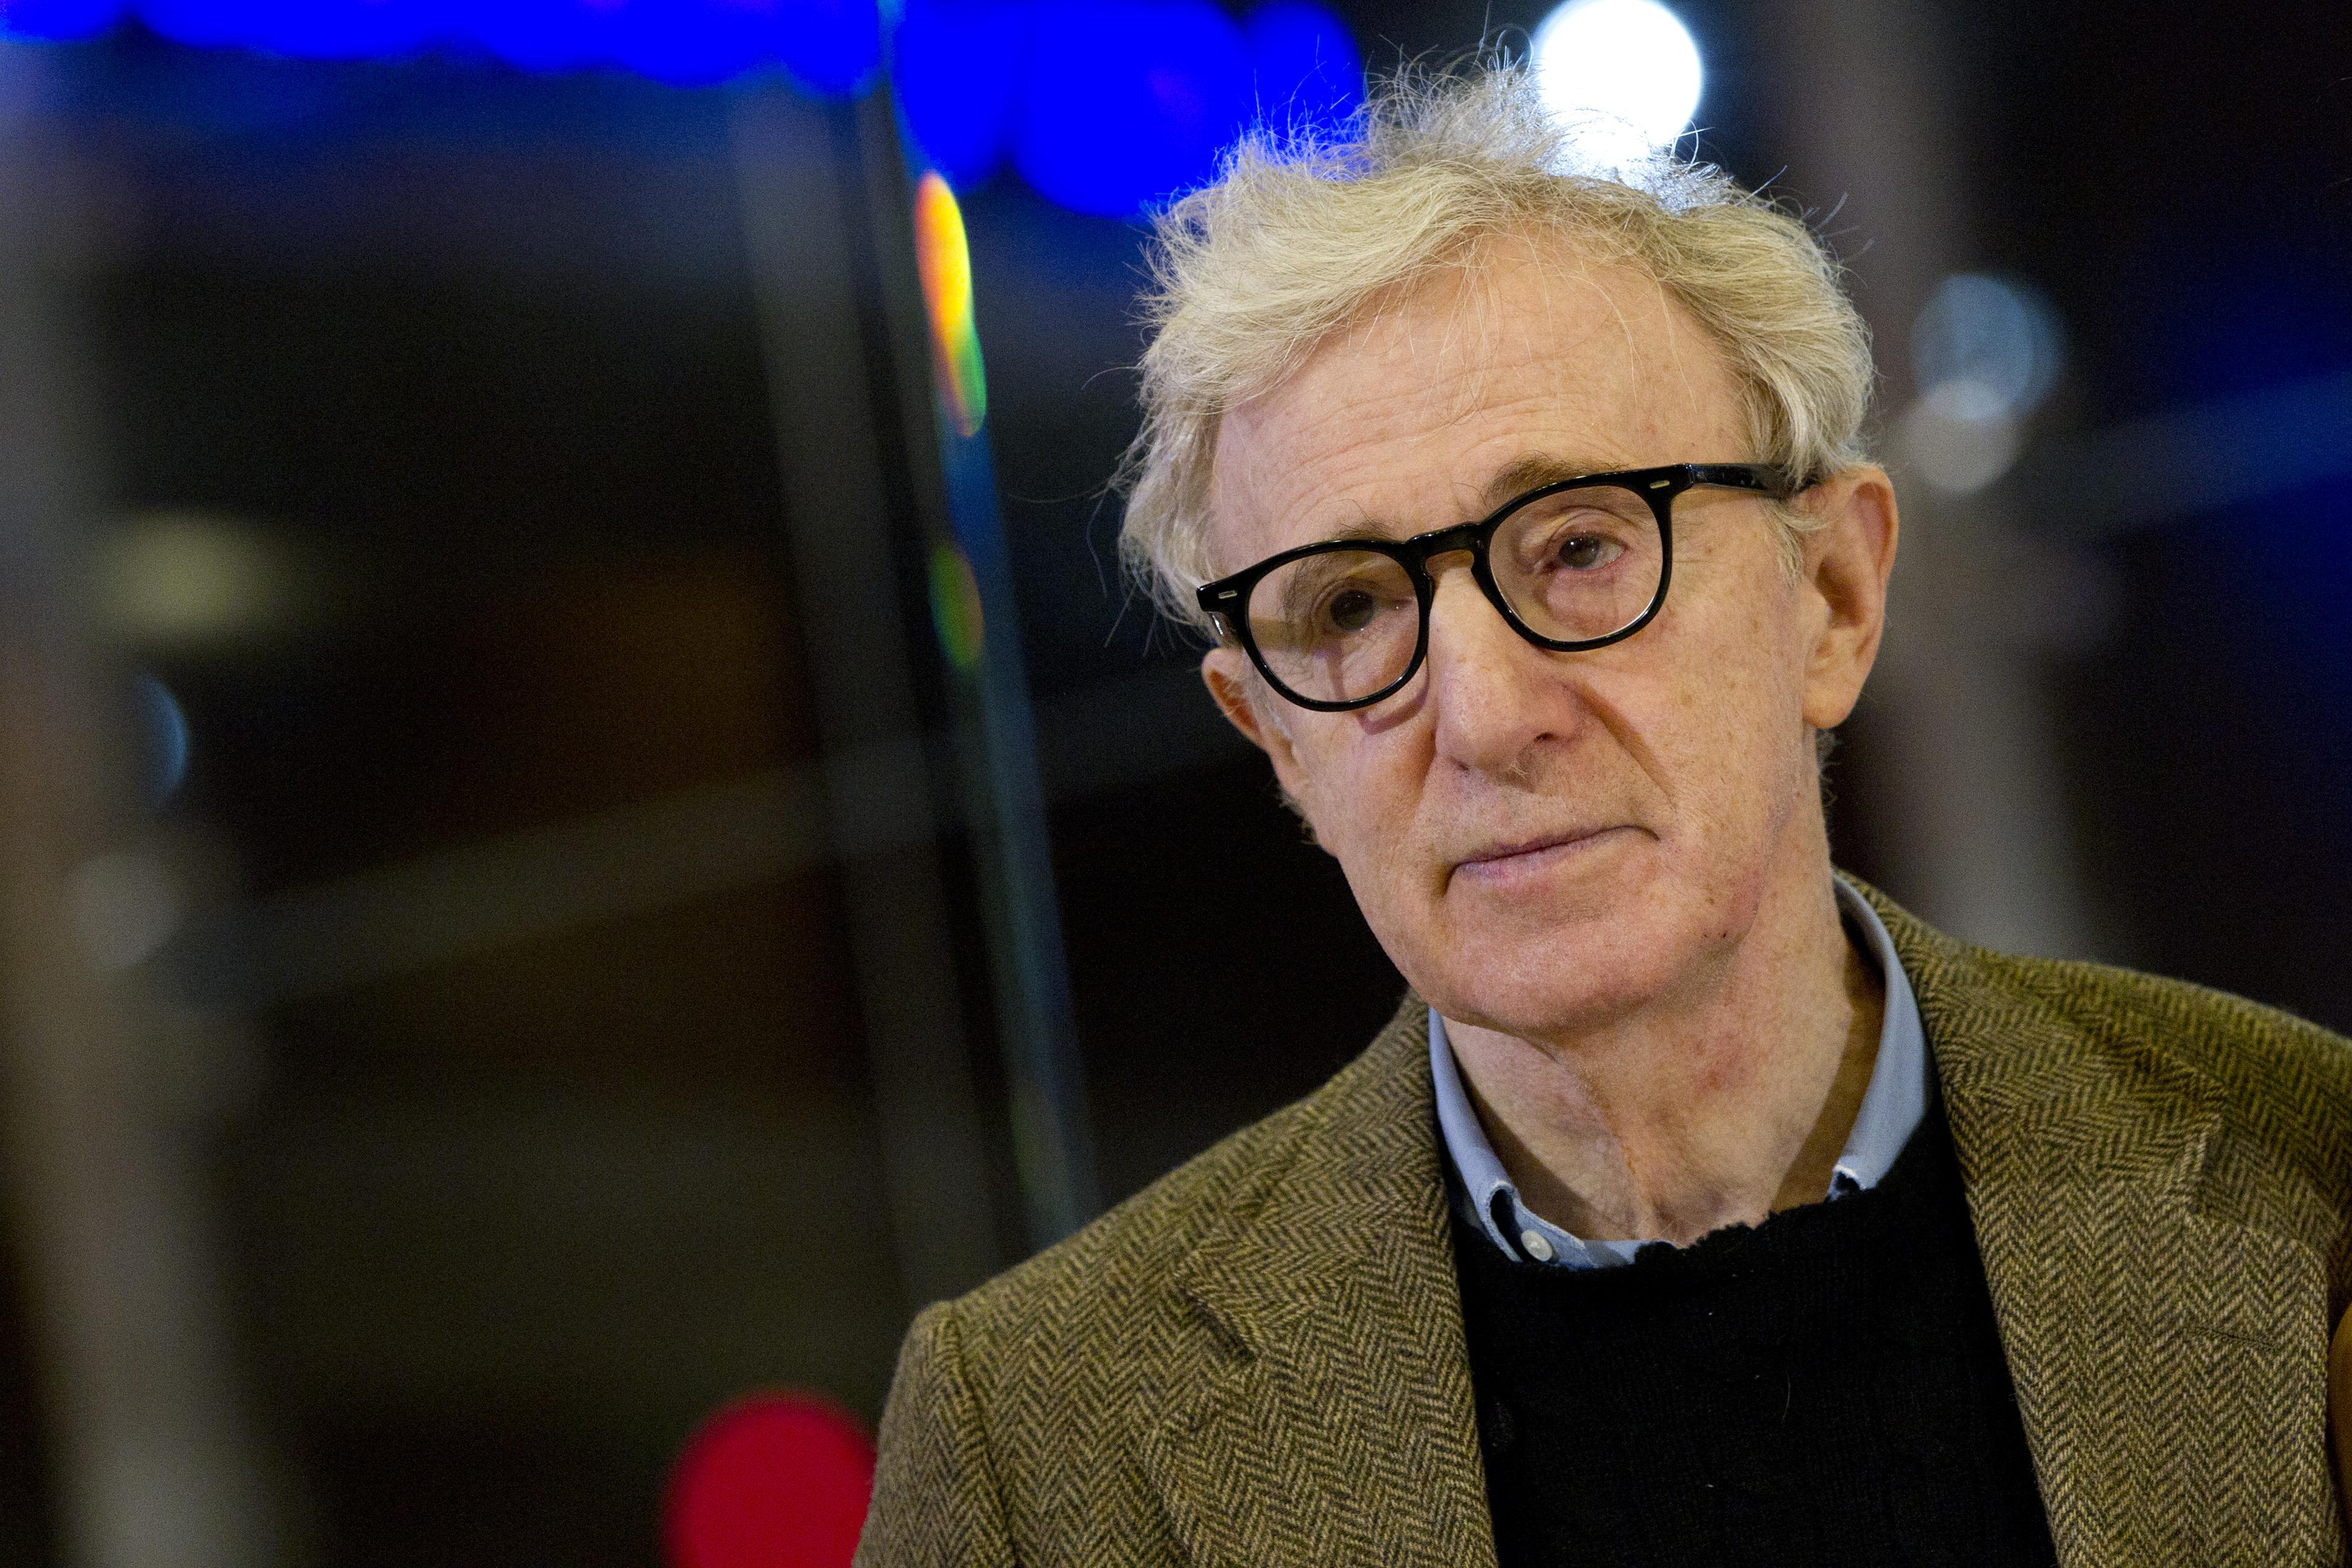 woody allen Our film critics rank and review the best woody allen movies of all time, including comedies, dramas, indies, romantic flicks and more.